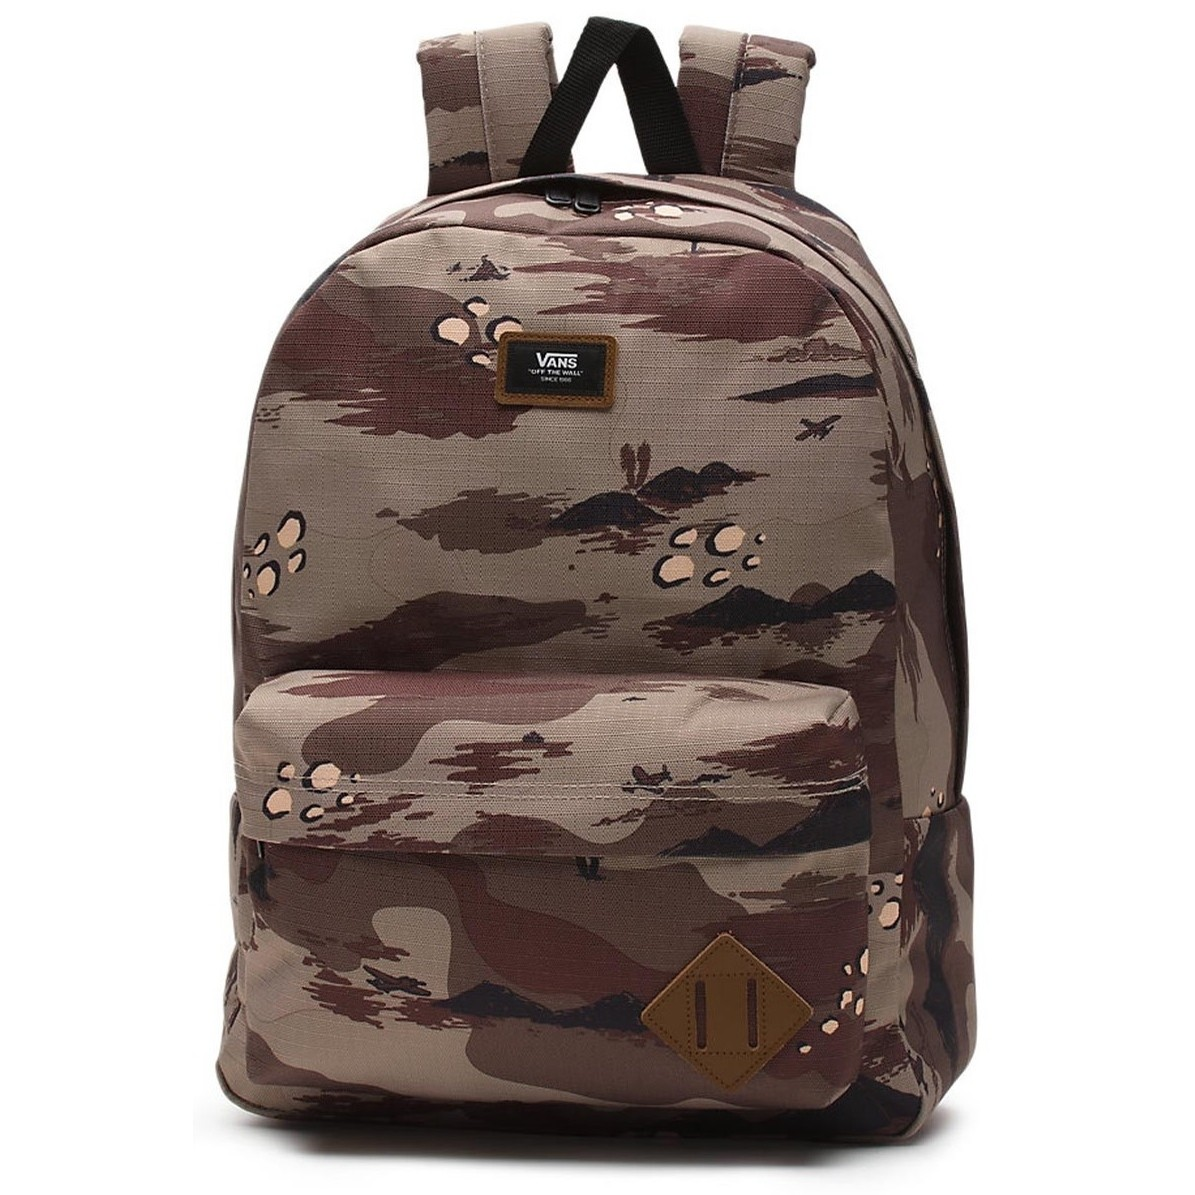 Old Skool II Backpack (Storm Camo)